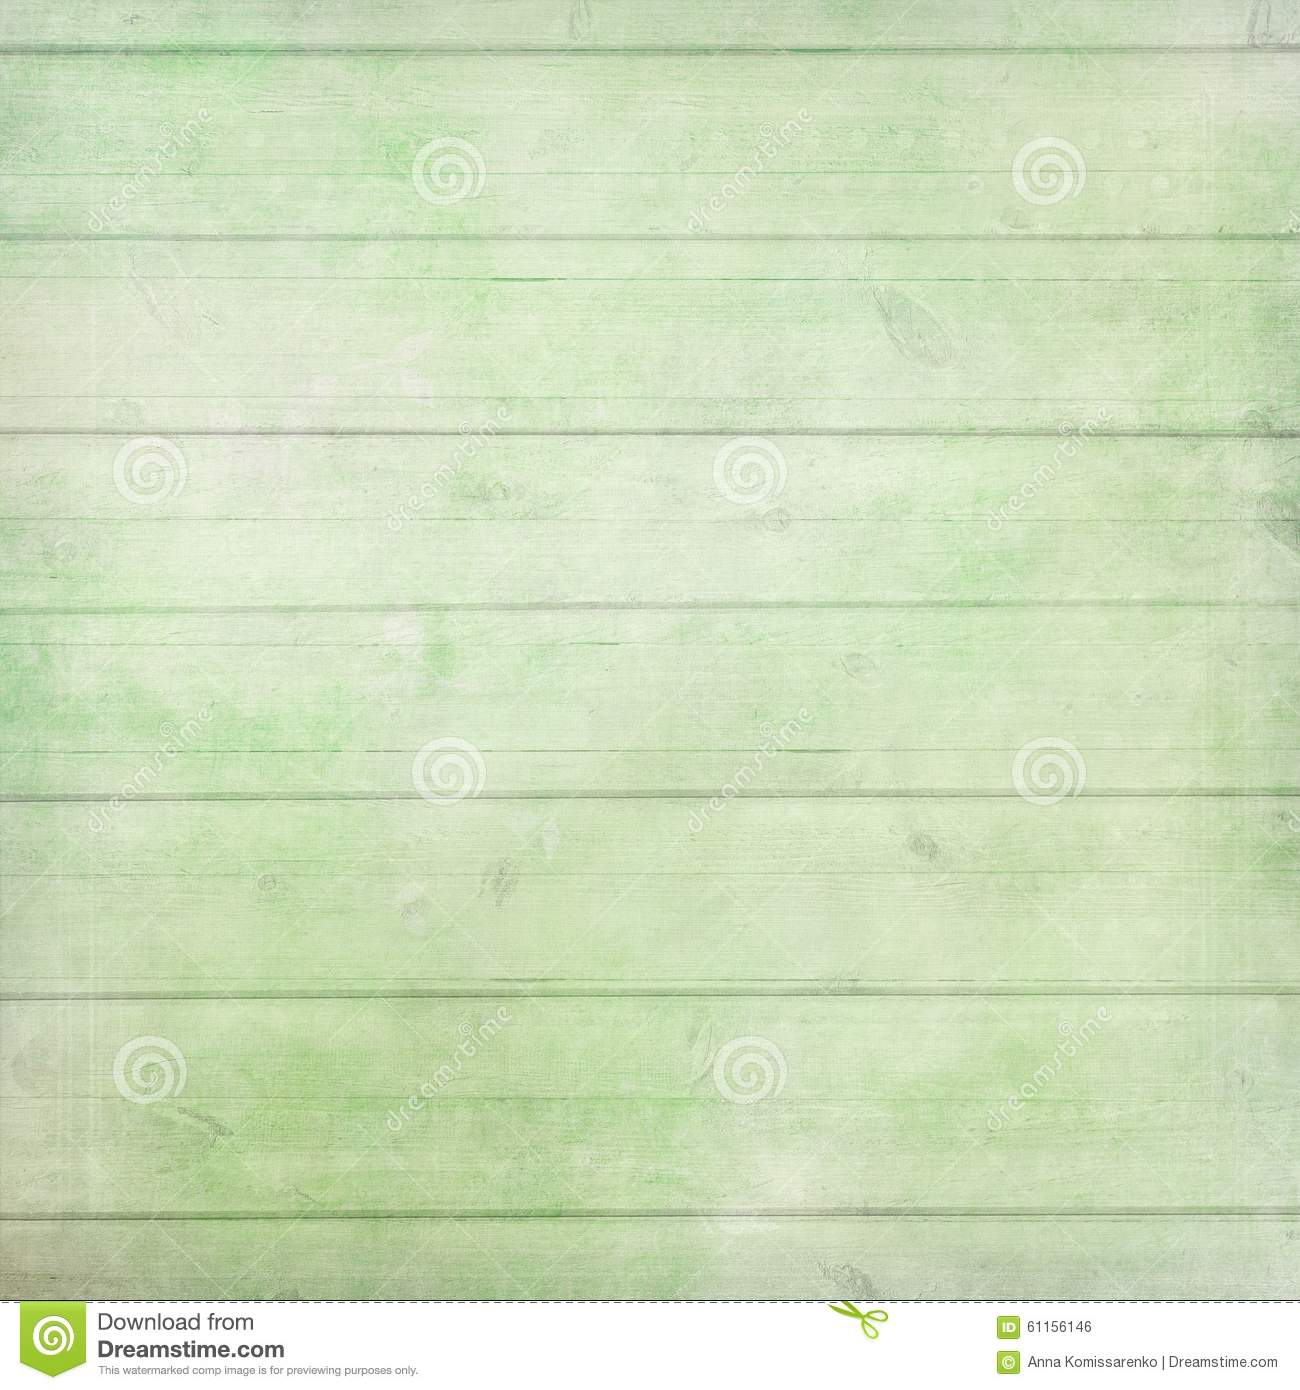 Mint Green Ombre Background